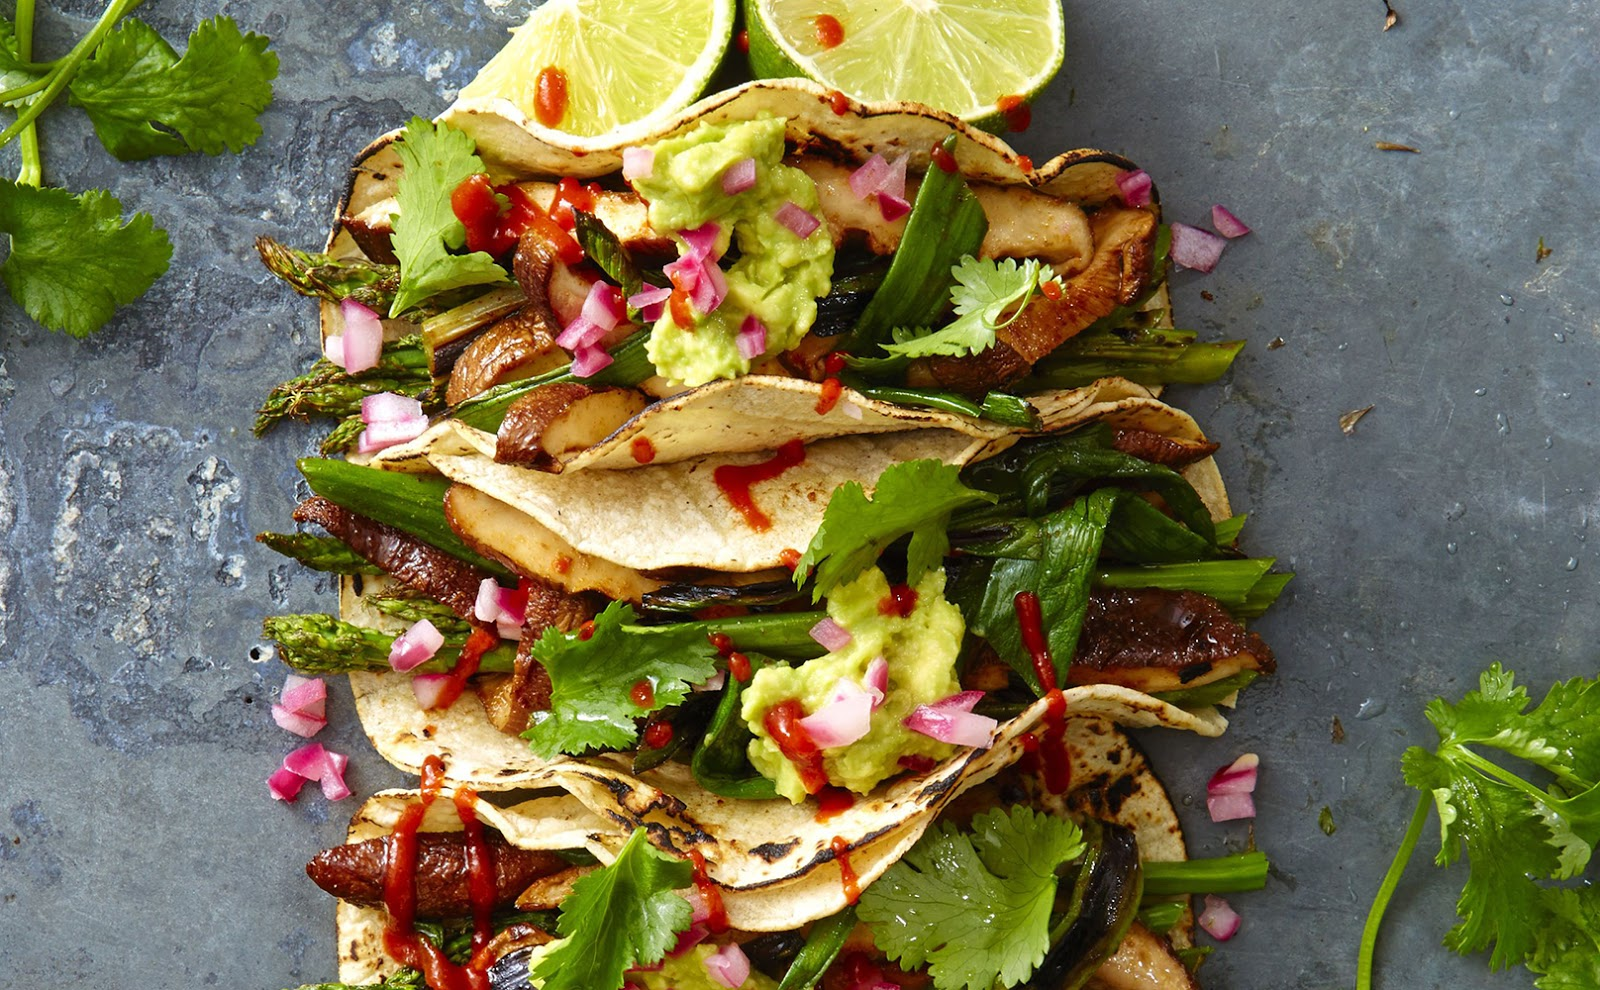 Easy healthy dinner: Grilled Asparagus and Shiitake Tacos